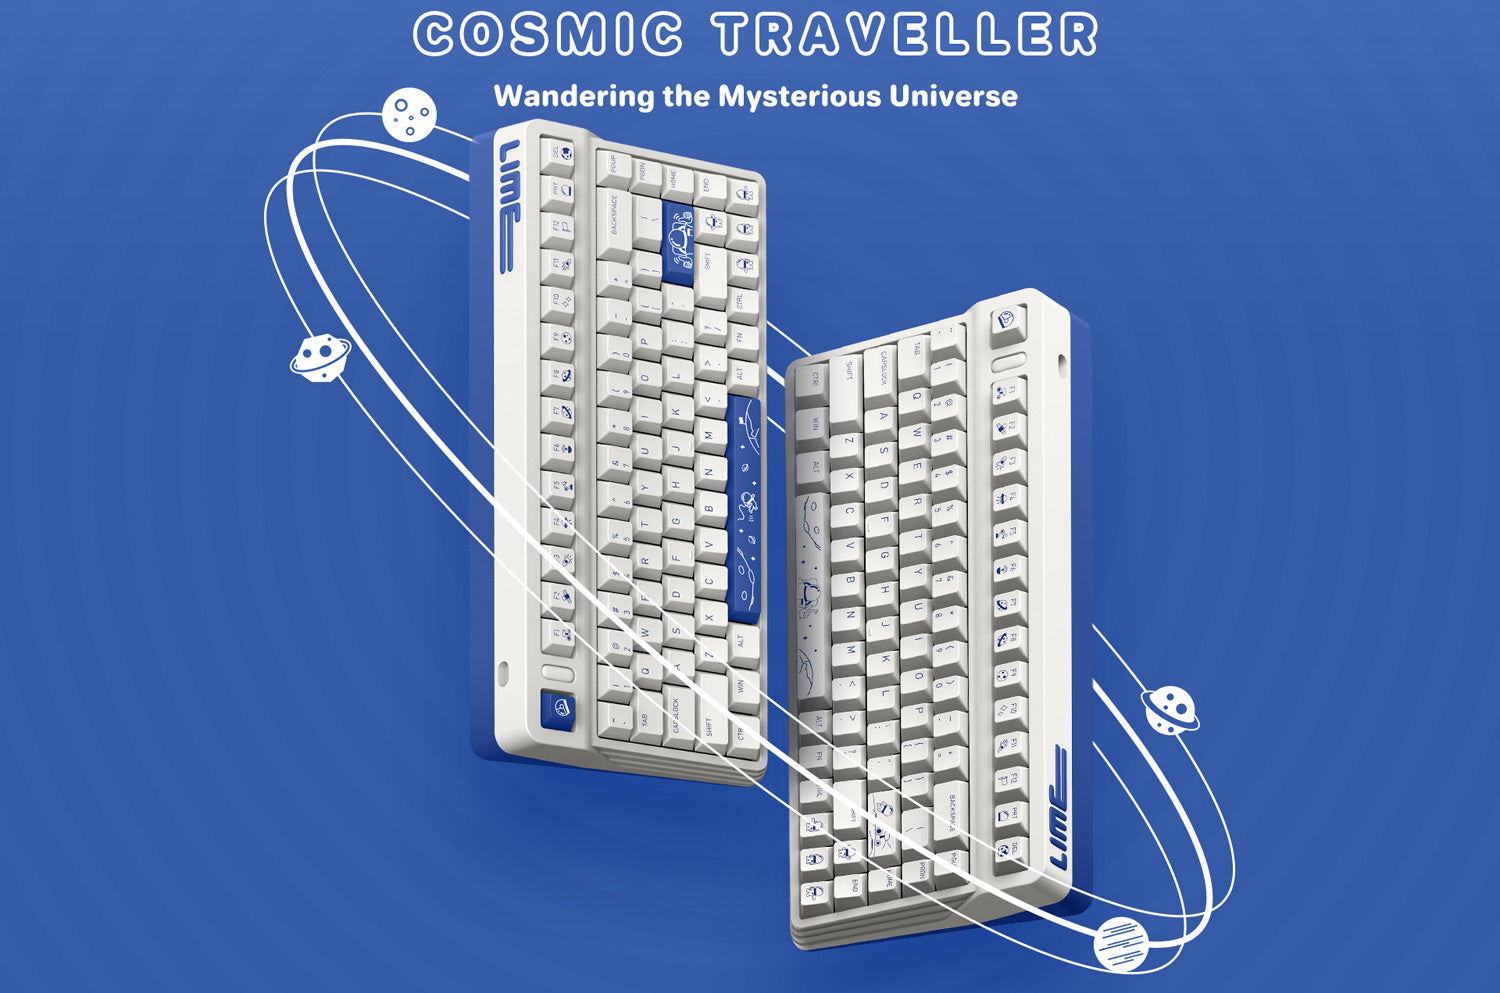 L80 SPACE THEMED Mechanical Keyboard L80 Comis Traveller